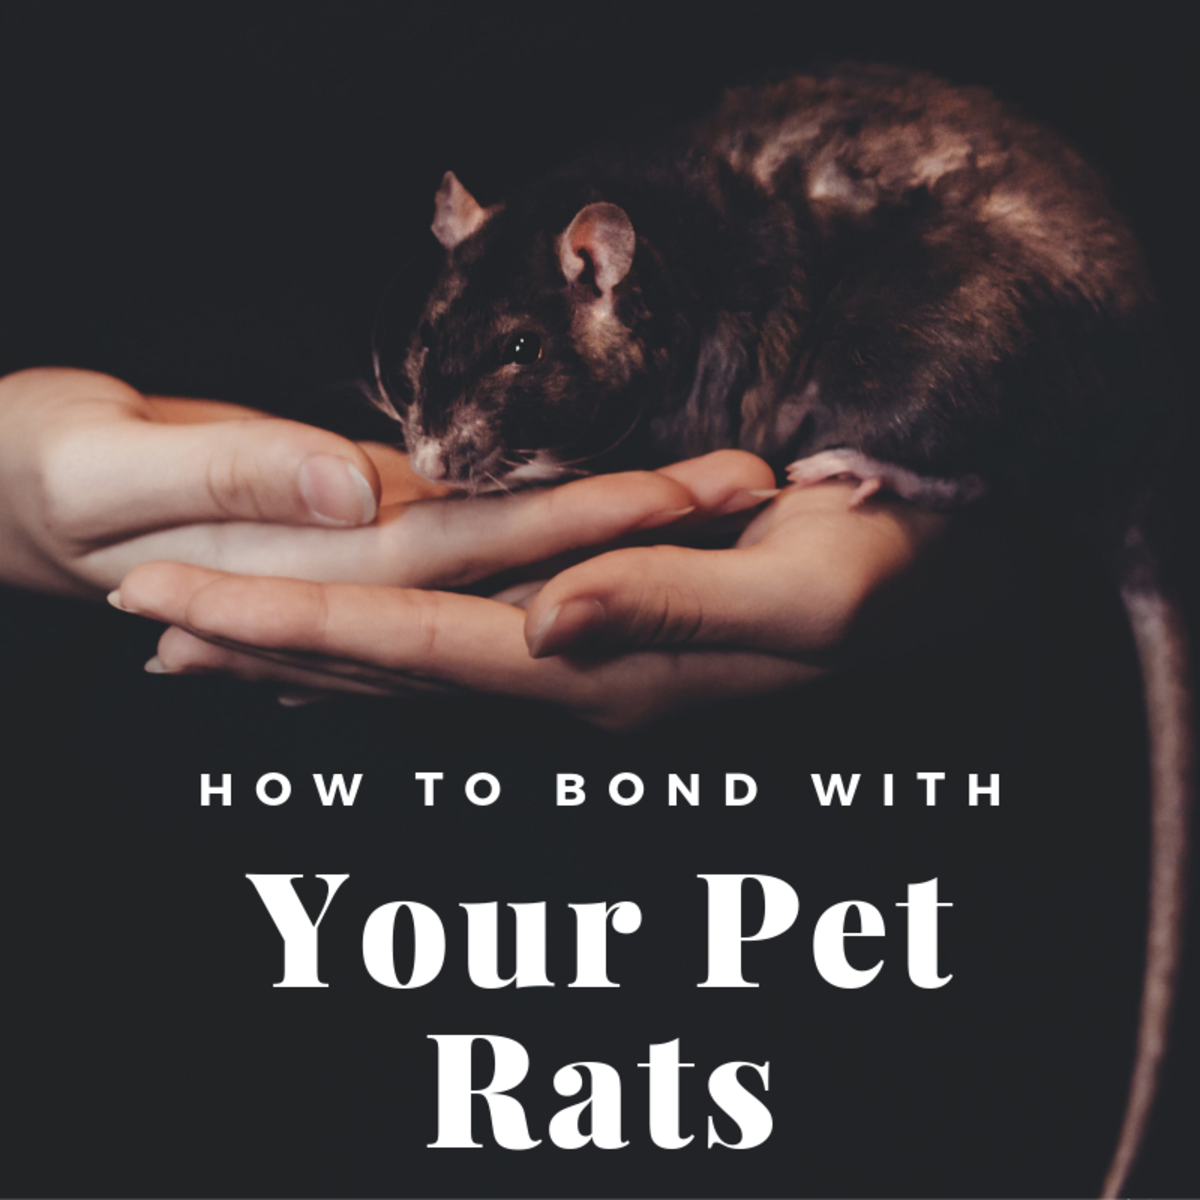 Rats are social creatures, but warming up to their new humans can take some time.